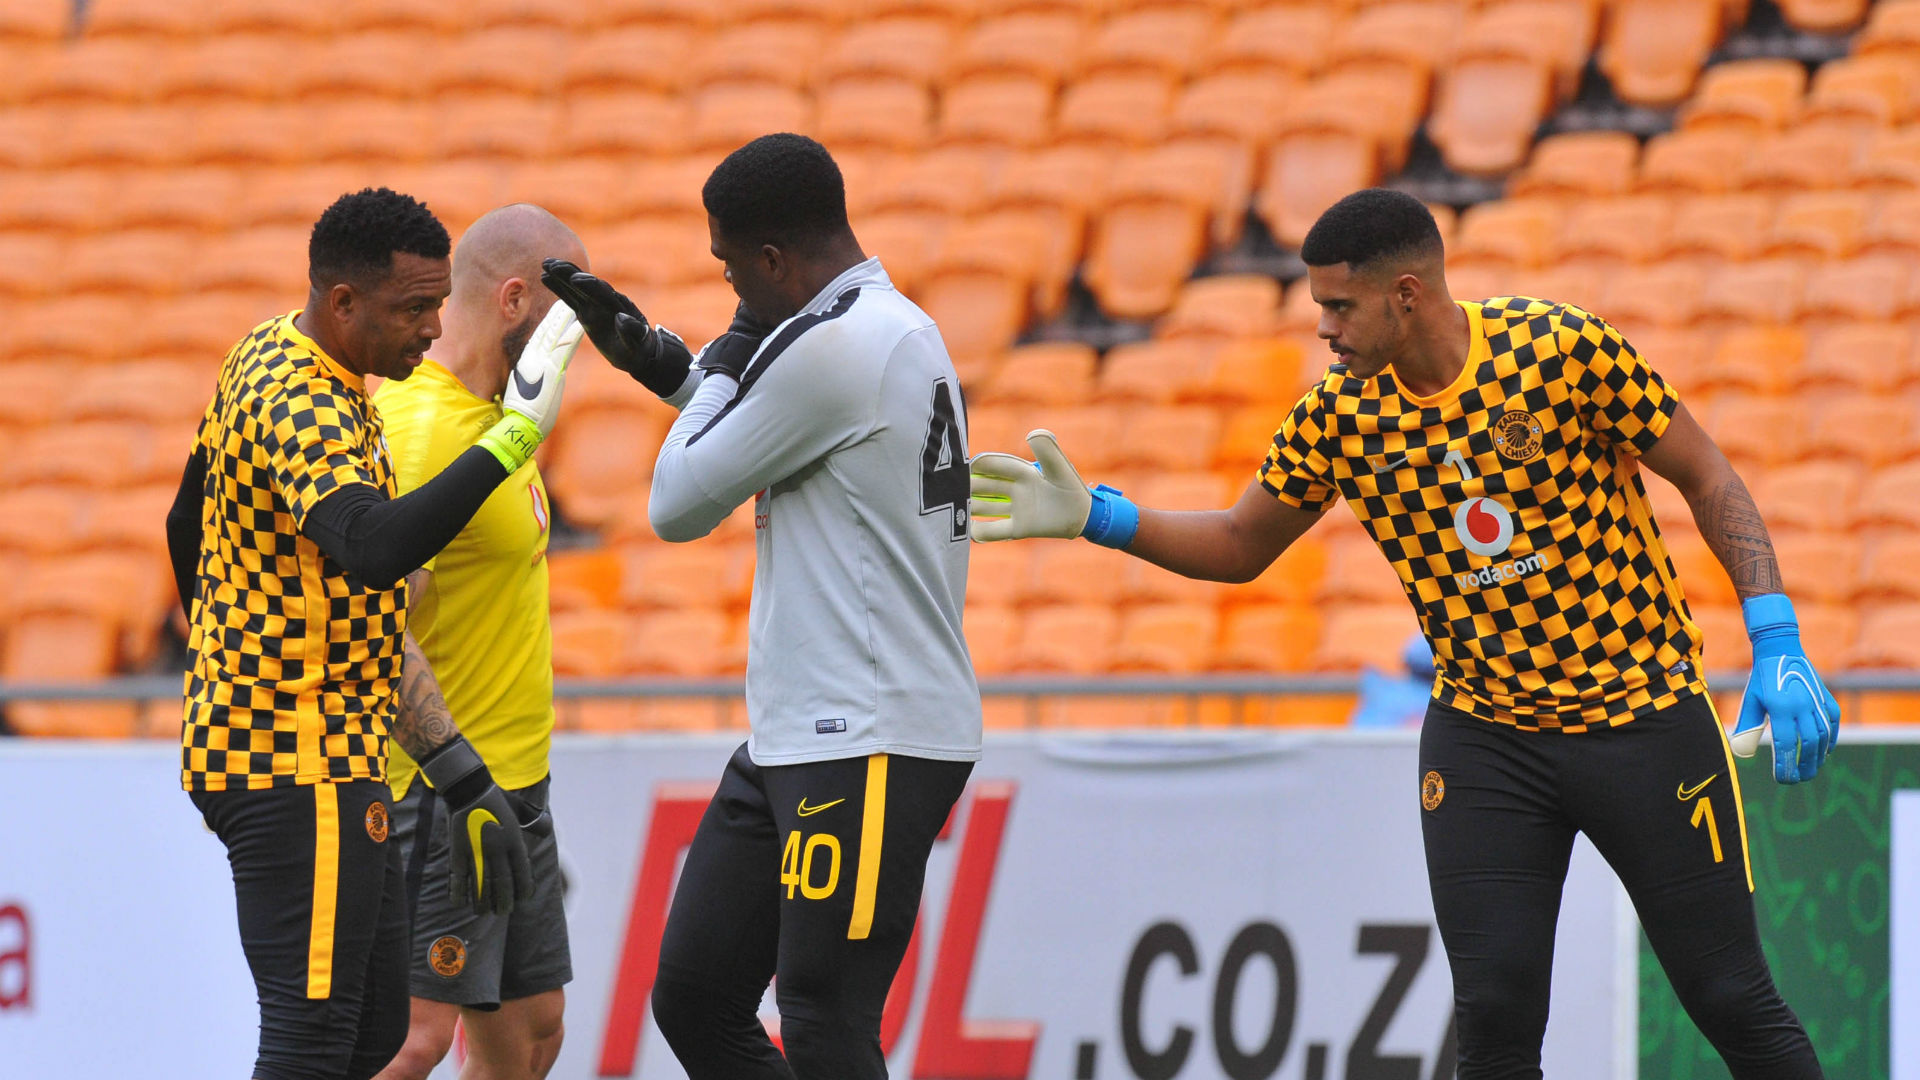 Itumeleng Khune and Daniel Akpeyi who is going to start the derby ?